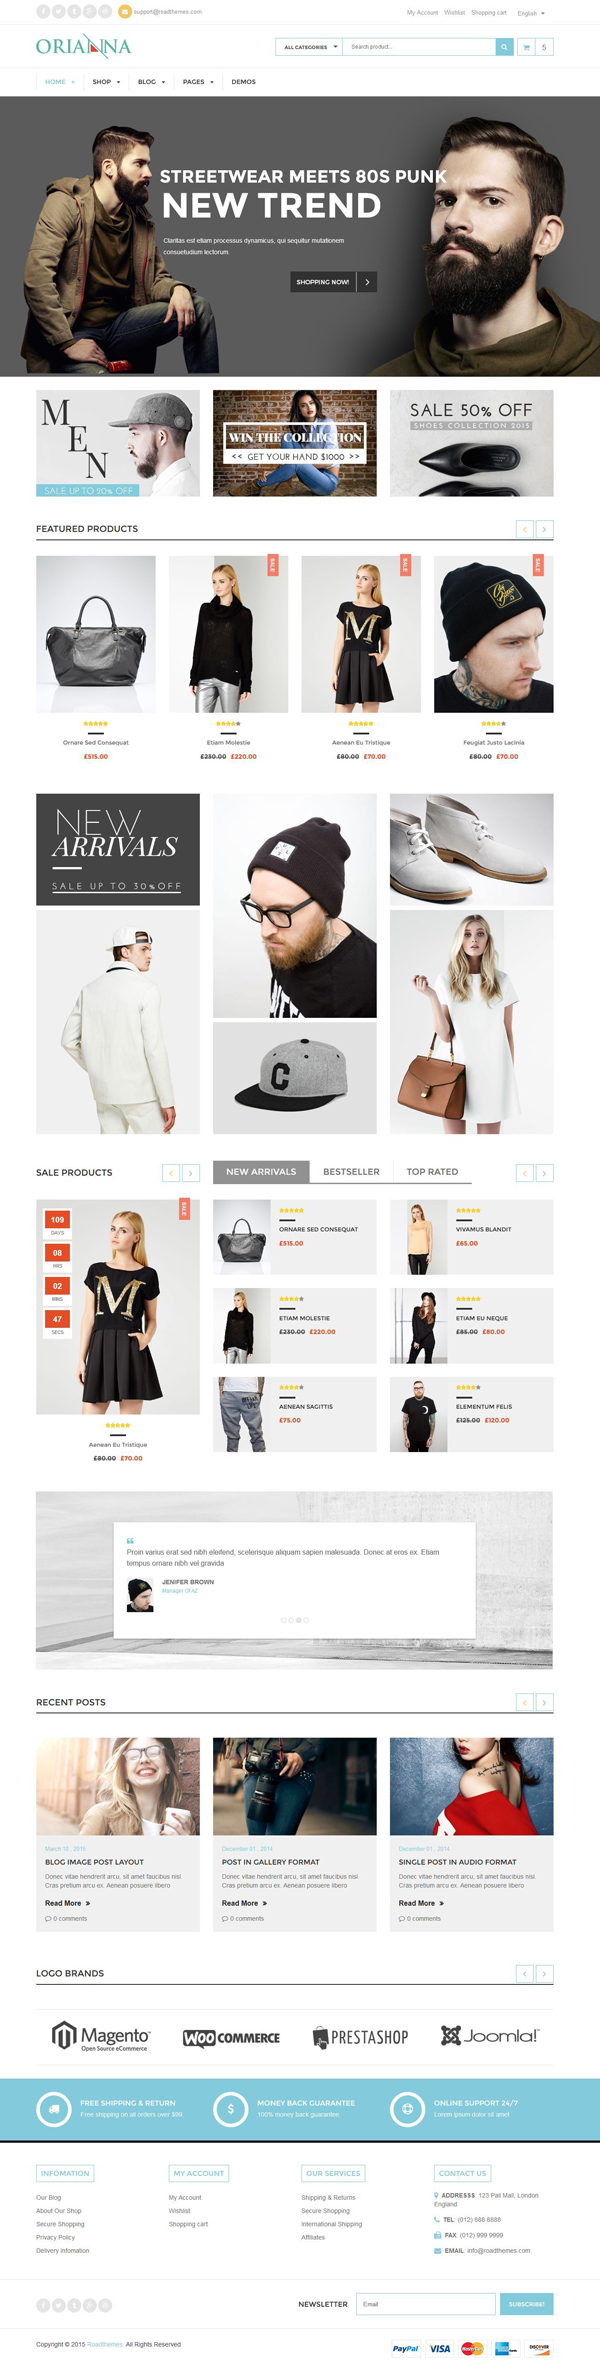 Orianna - Responsive WooCommerce Fashion Theme